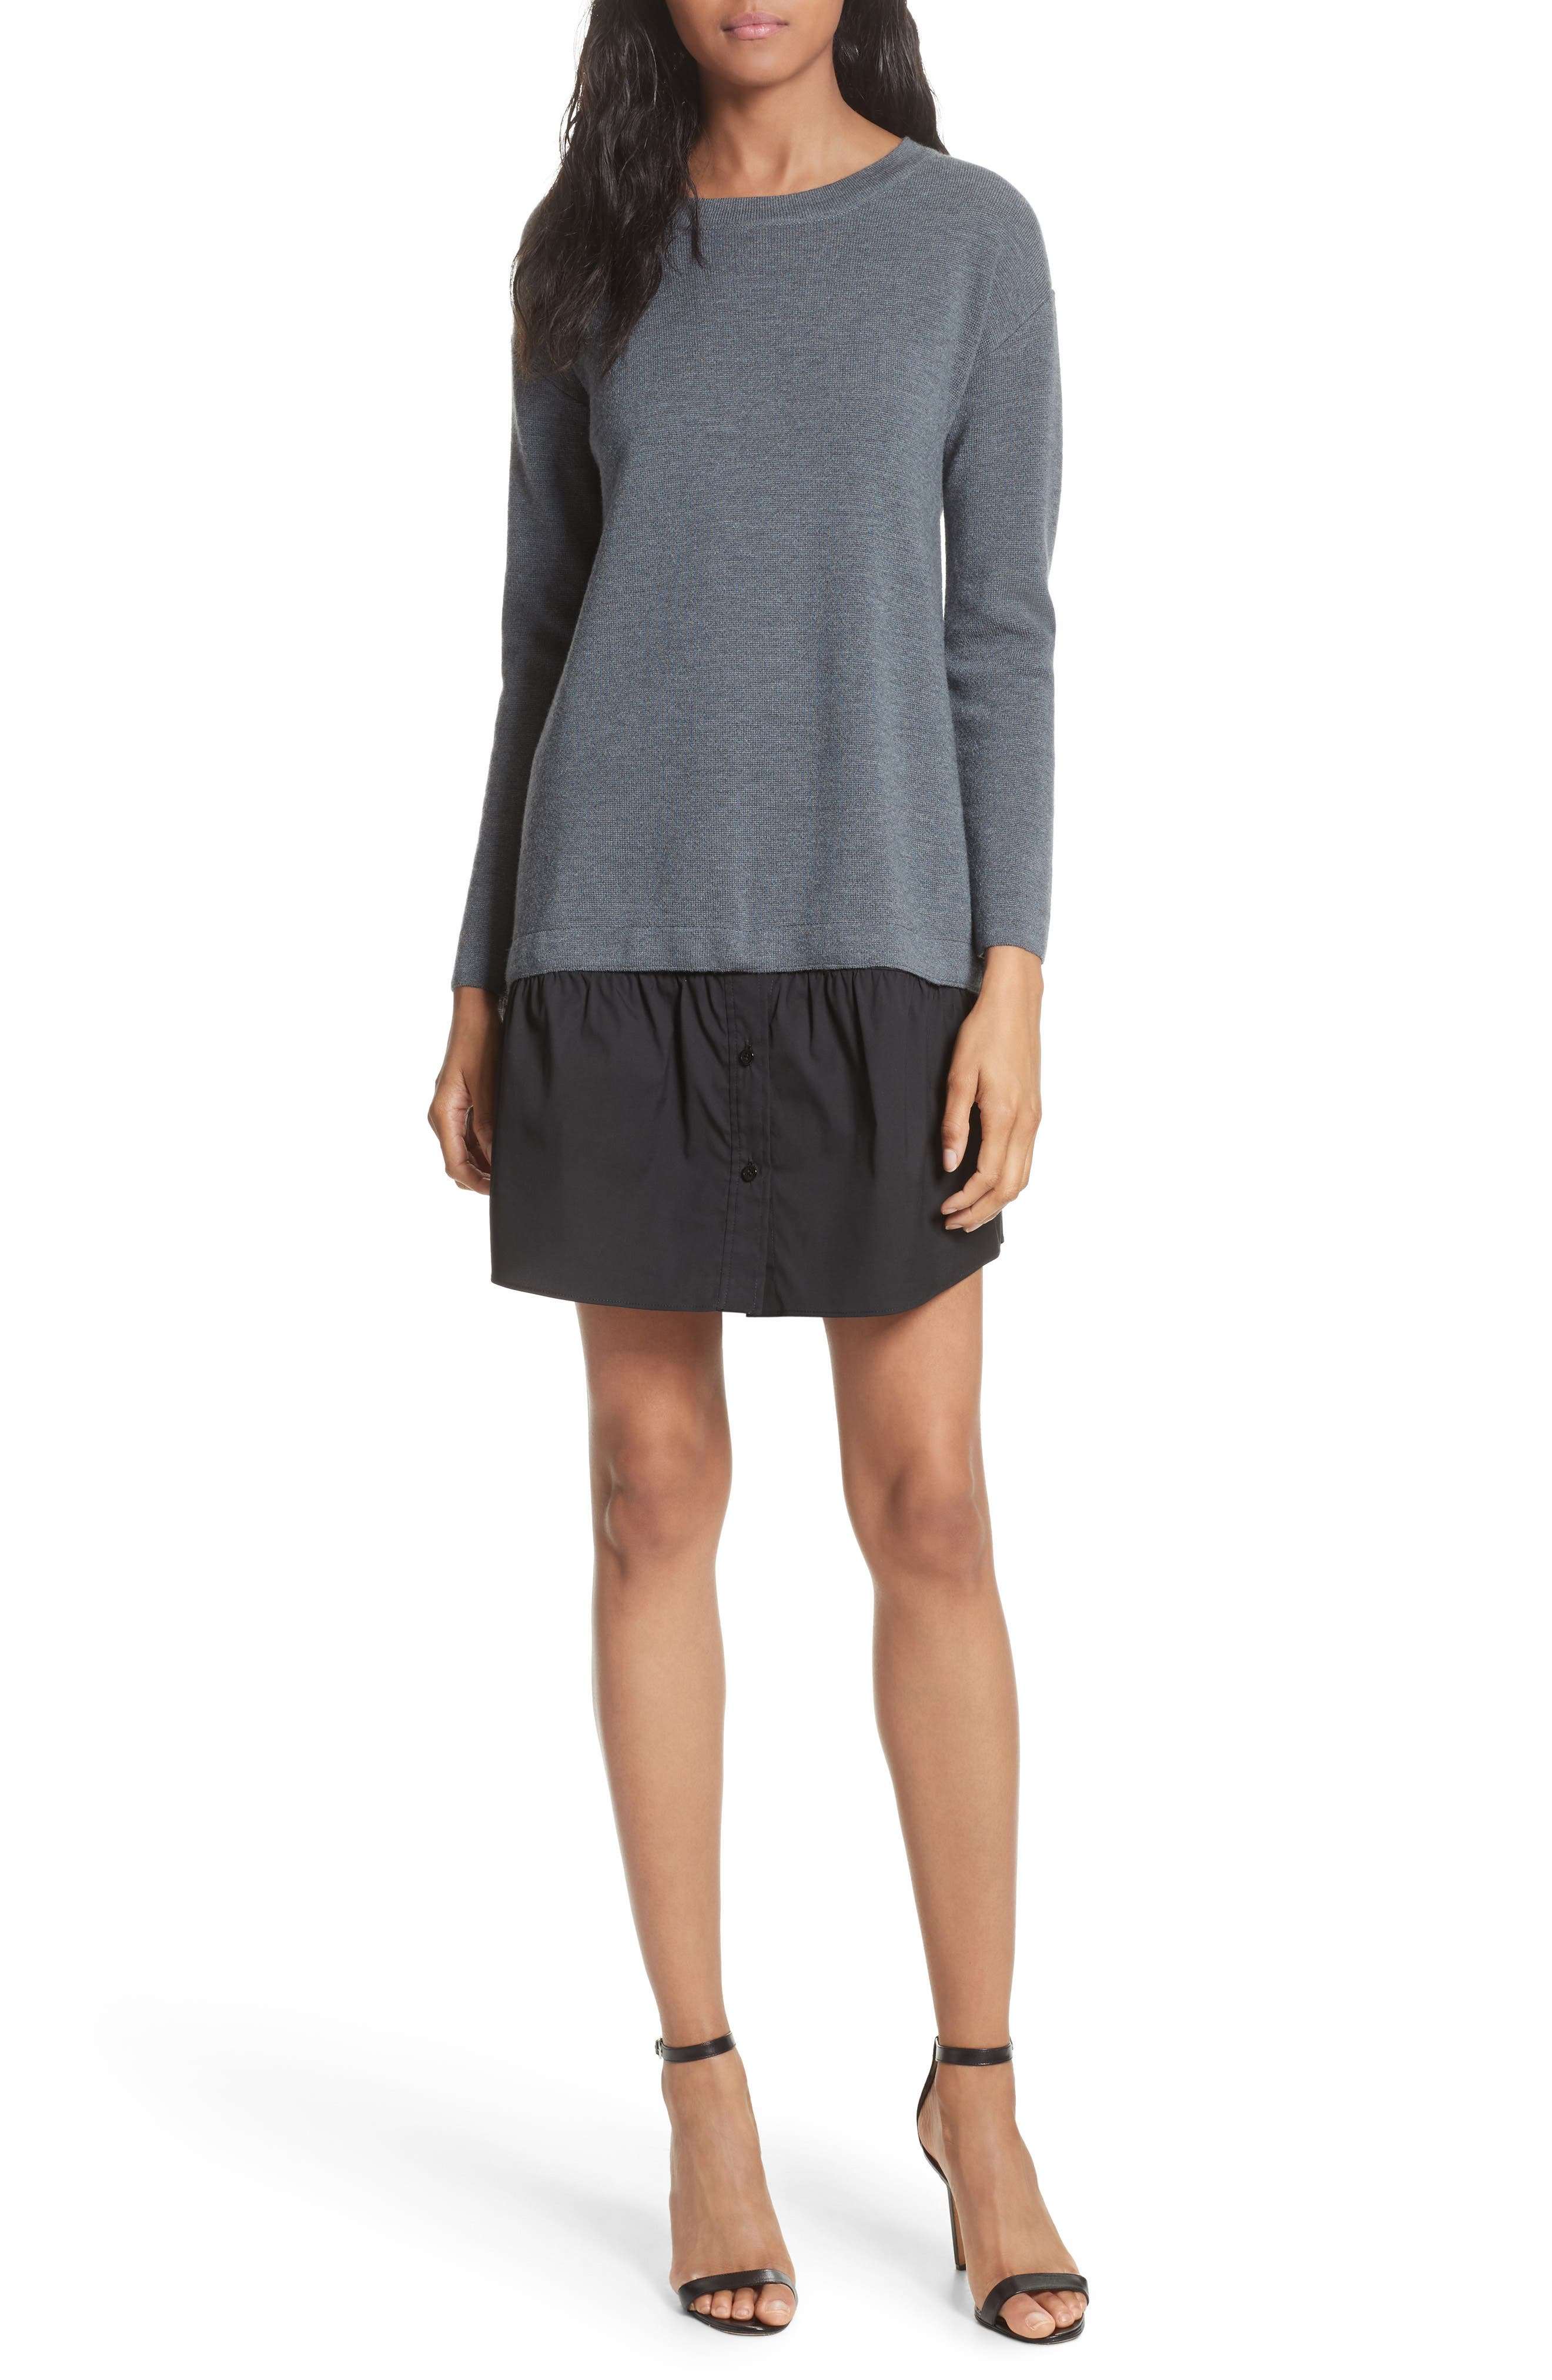 2-in-1 Sweater Dress,                         Main,                         color, Heather Grey